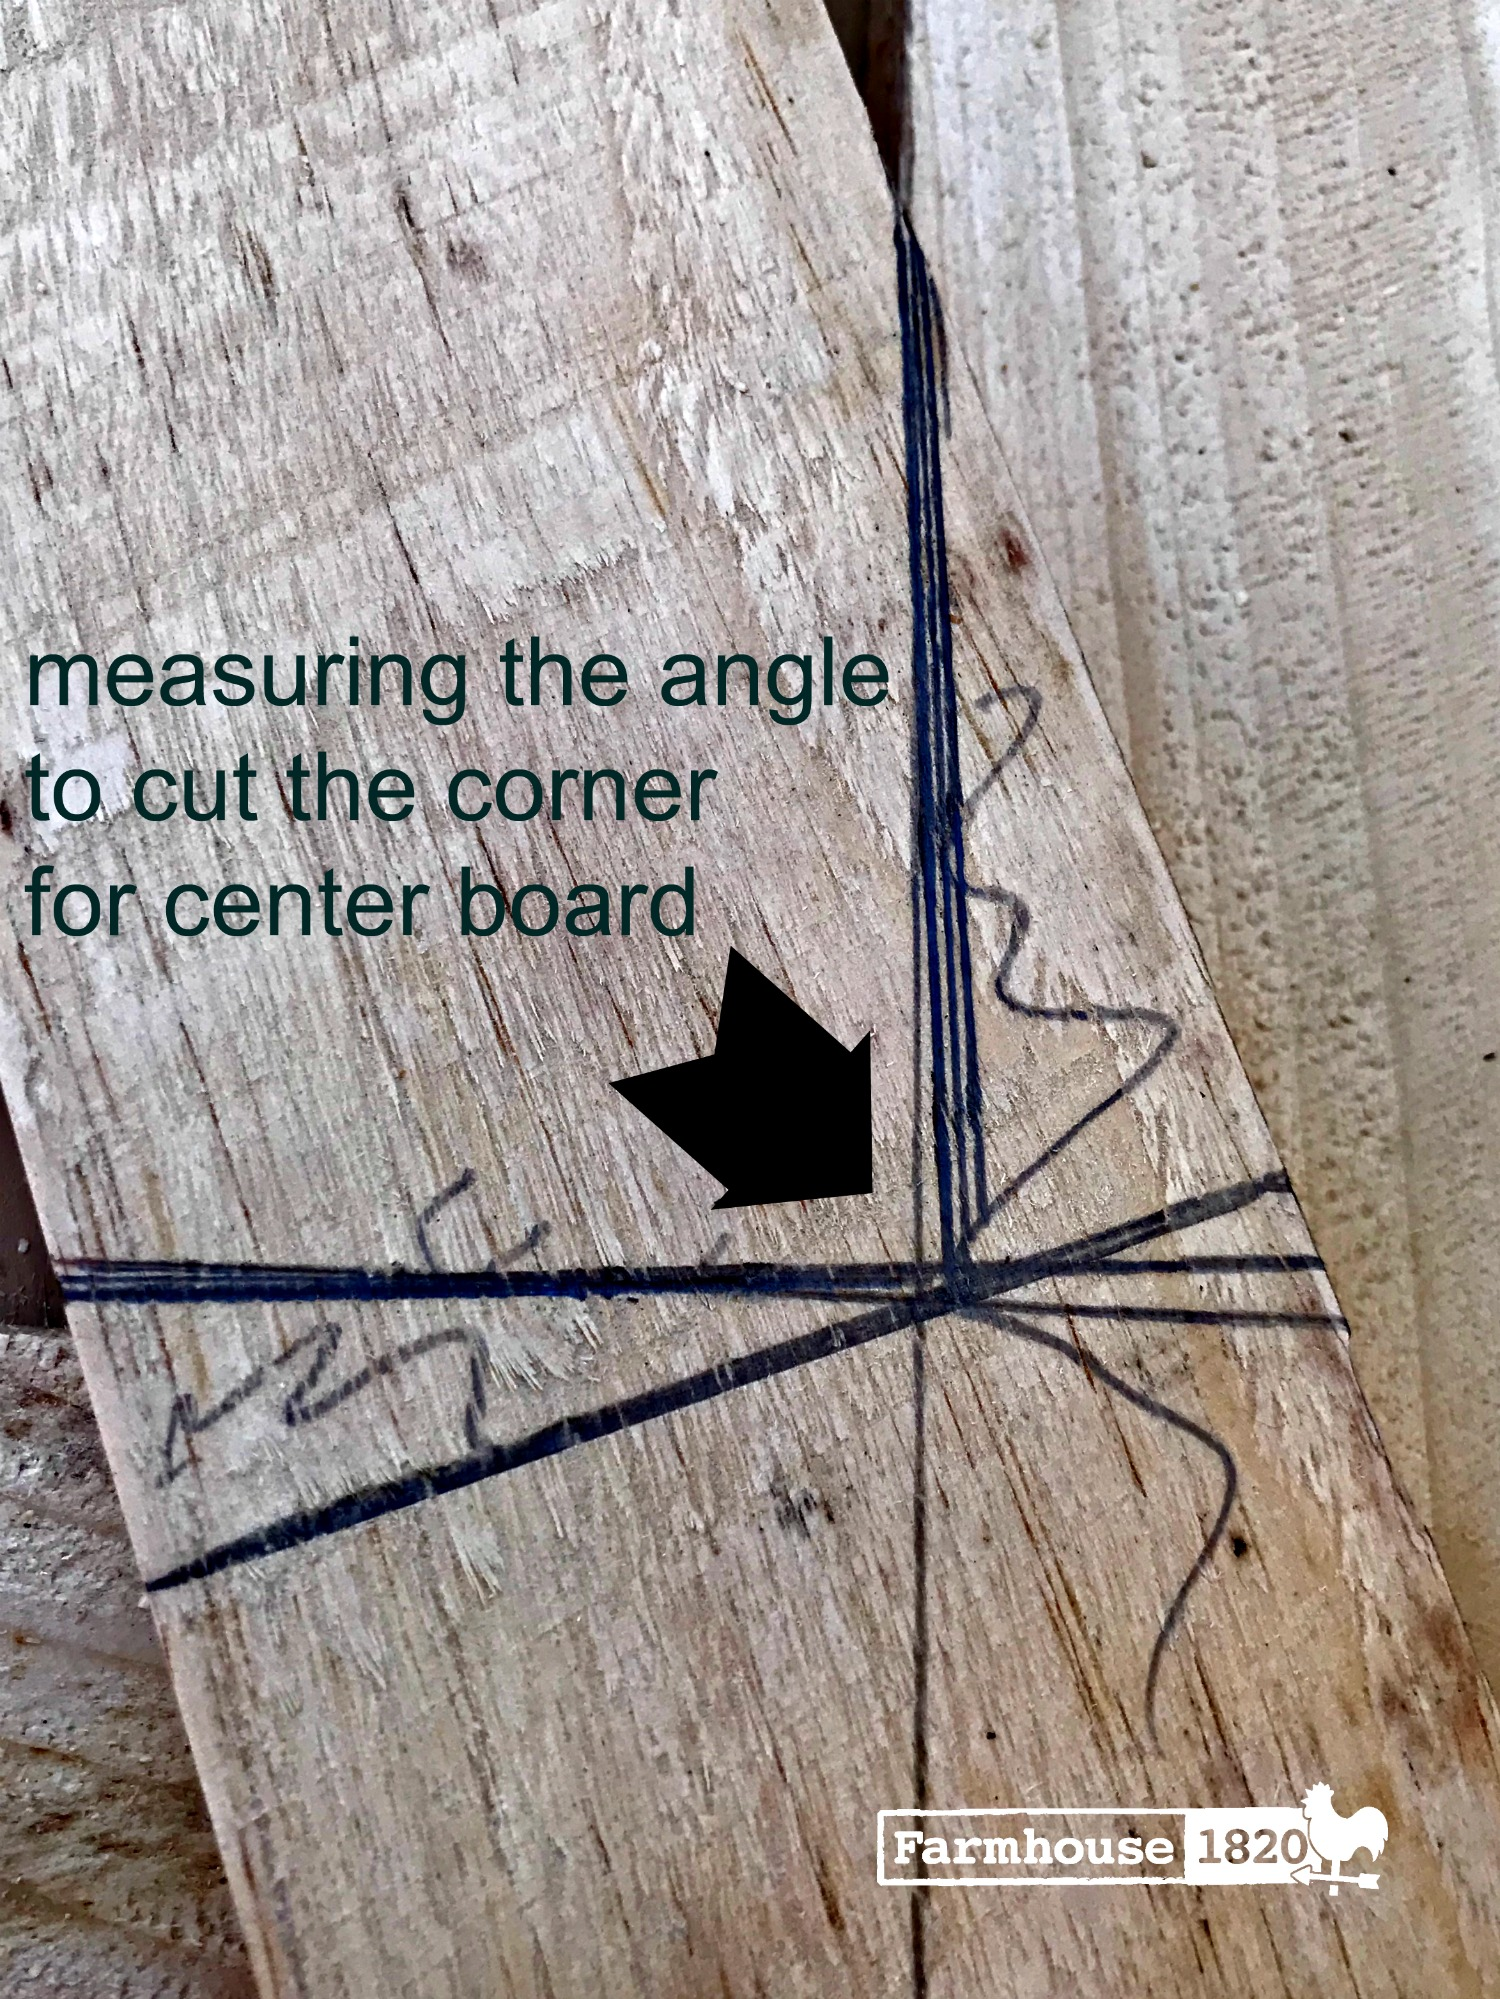 bard door - measuring and cutting the corners